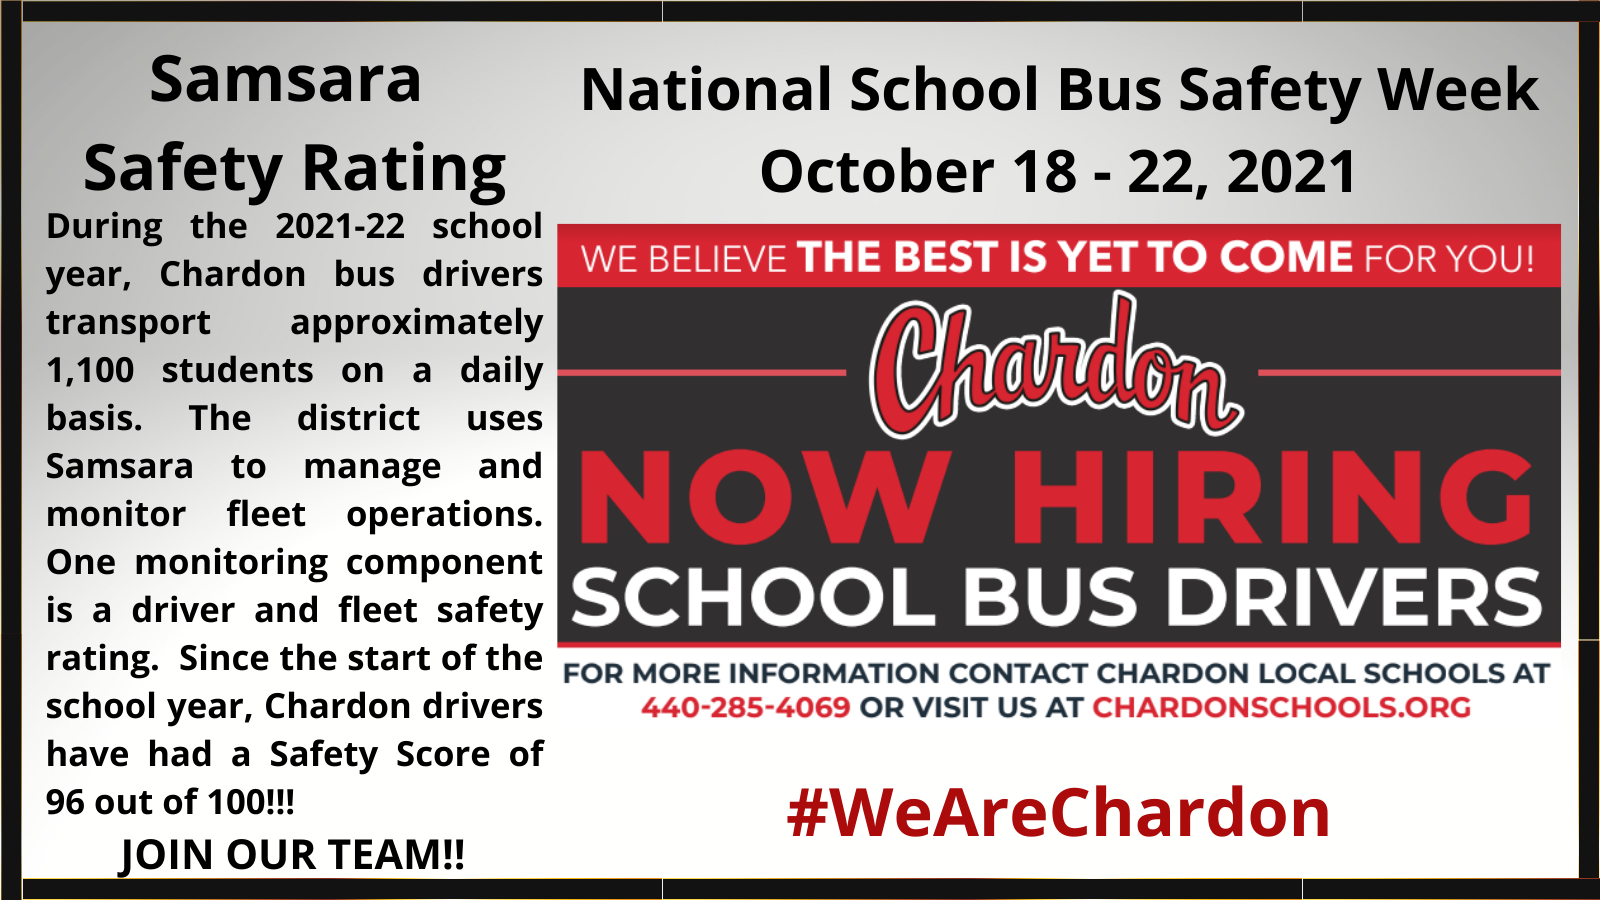 Samsara Safety Rating:  Chardon bus drivers transport approximately 1,100 students on a daily basis.  One monitoring component of the Samsara Safety Rating is a driver and fleet safety rating. Since the start of the school year, Chardon drivers have had a Safety Score of 96 out of 100!; Now Hiring School Bus Drivers - For More Information Contact Chardon Transportation at 440-285-4069 or visit the Employment page at chardonschools.org